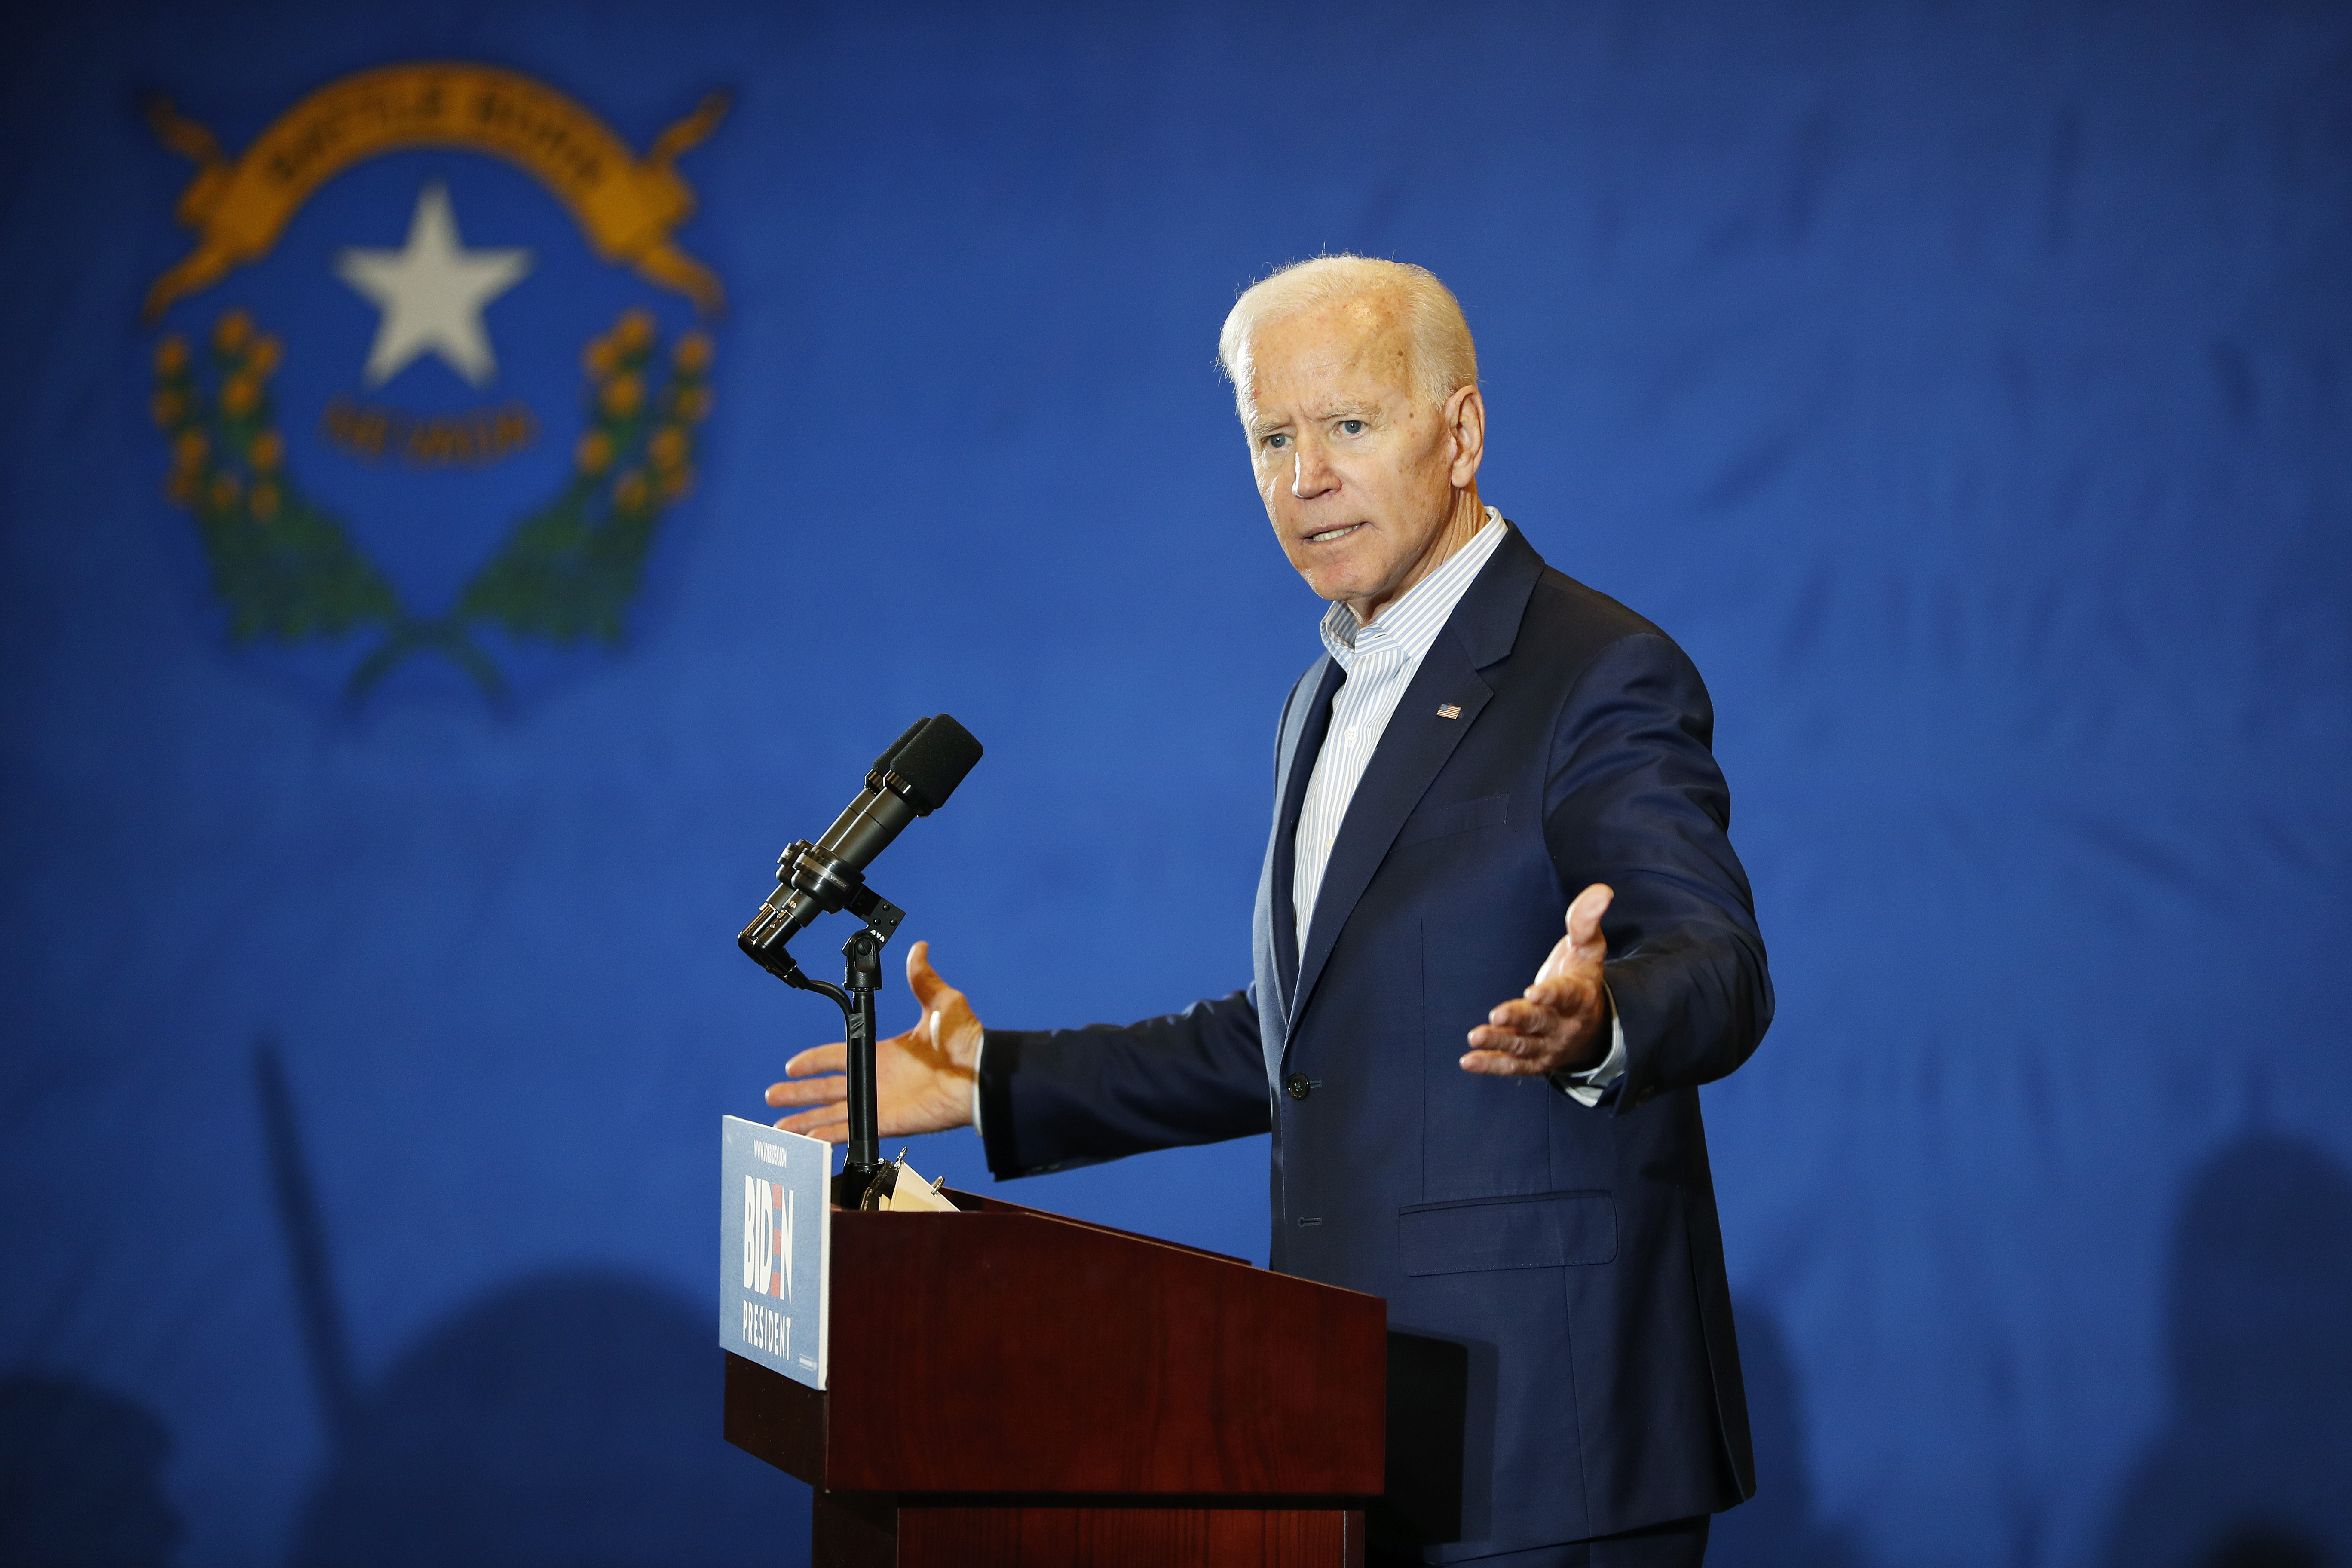 Joe Biden promises unity at Hollywood fundraiser: People are 'sick and tired of what's happening'